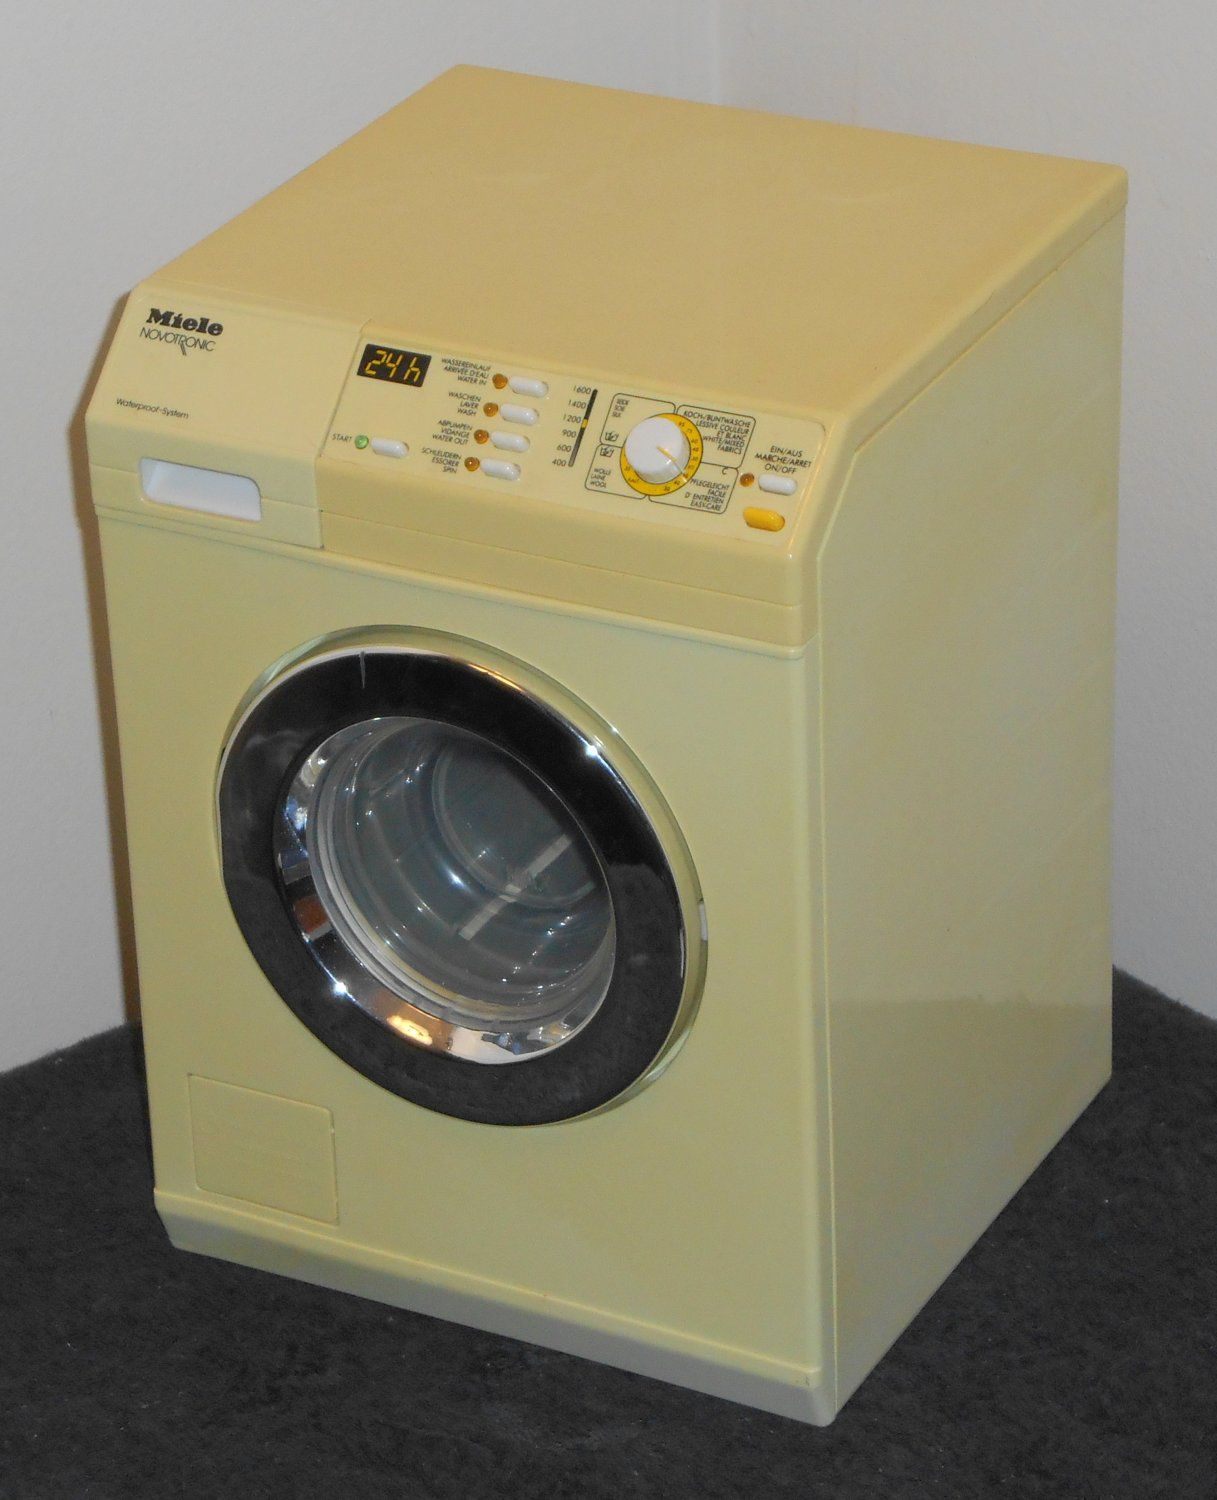 For Sale Miele Novotronic Doll Toy Clothes Washer Washing Machine Theo Klein Battery Operated Washing Machine Clothes Washer Doll Toys